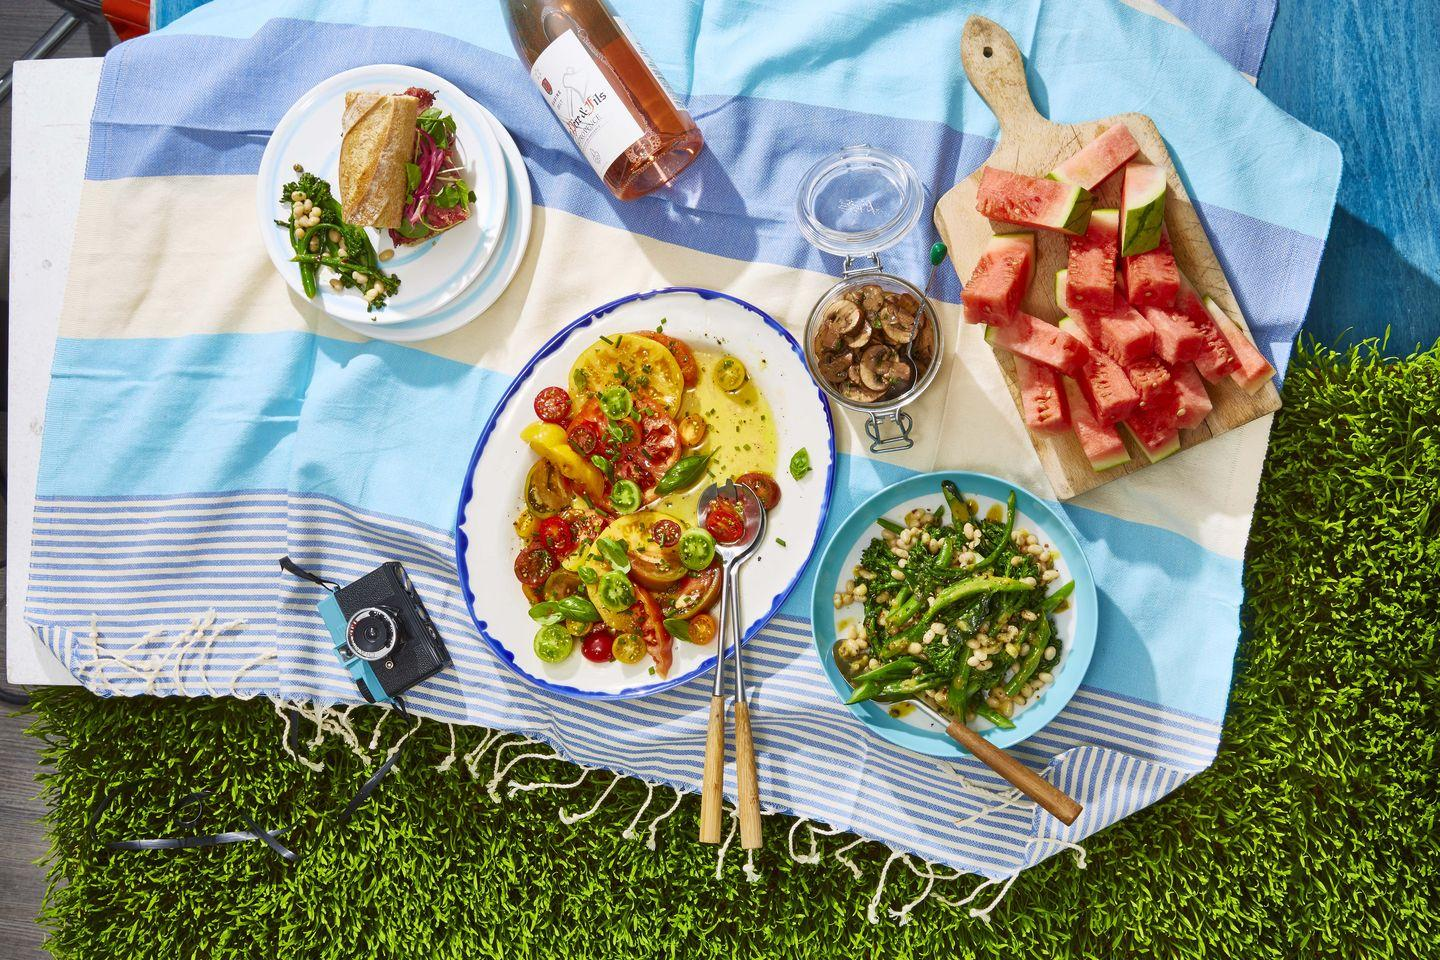 "<p>A jar of marinated mushrooms is easy to pack for a picnic.</p><p><strong><a href=""https://www.countryliving.com/food-drinks/a33217650/marinated-mushrooms-recipe/"" rel=""nofollow noopener"" target=""_blank"" data-ylk=""slk:Get the recipe"" class=""link rapid-noclick-resp"">Get the recipe</a>.</strong></p>"